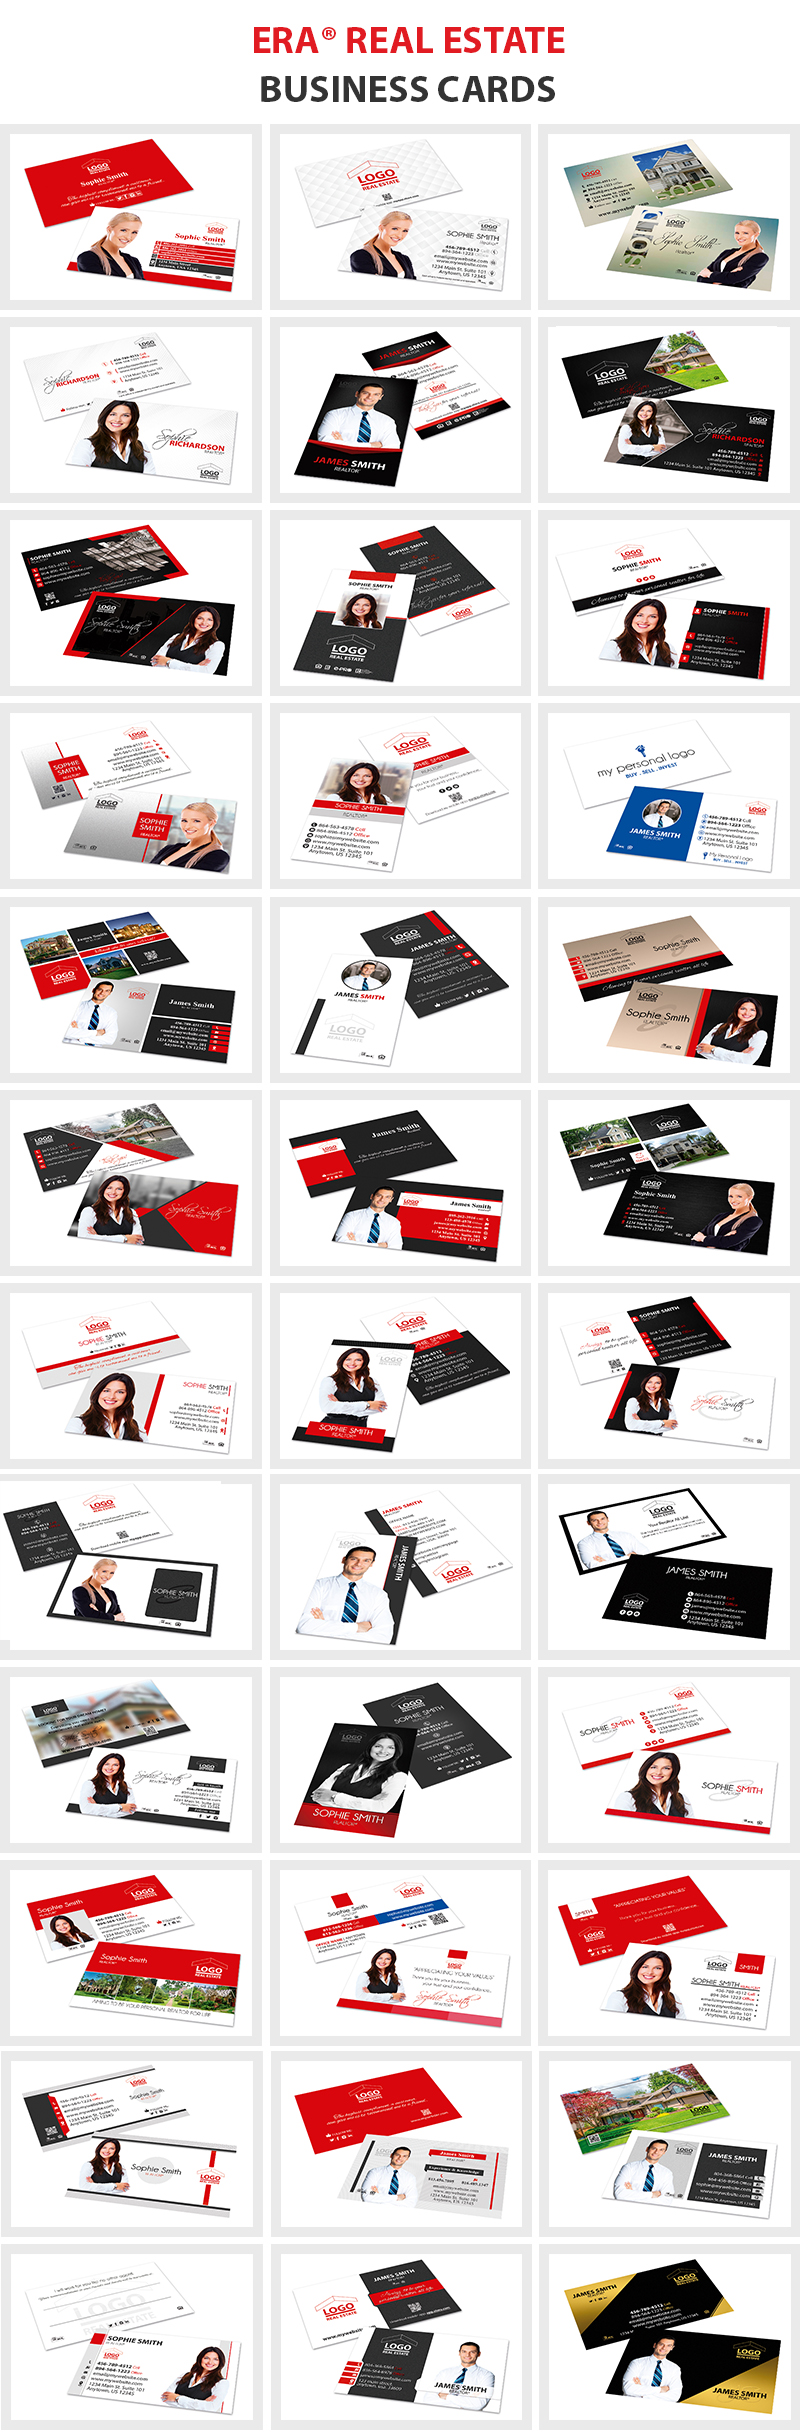 ERA Real Estate Business Cards, ERA Realtor Business Cards, ERA Broker Business Cards, ERA Real Estate Agent Business Cards, ERA Real Estate Office Business Cards